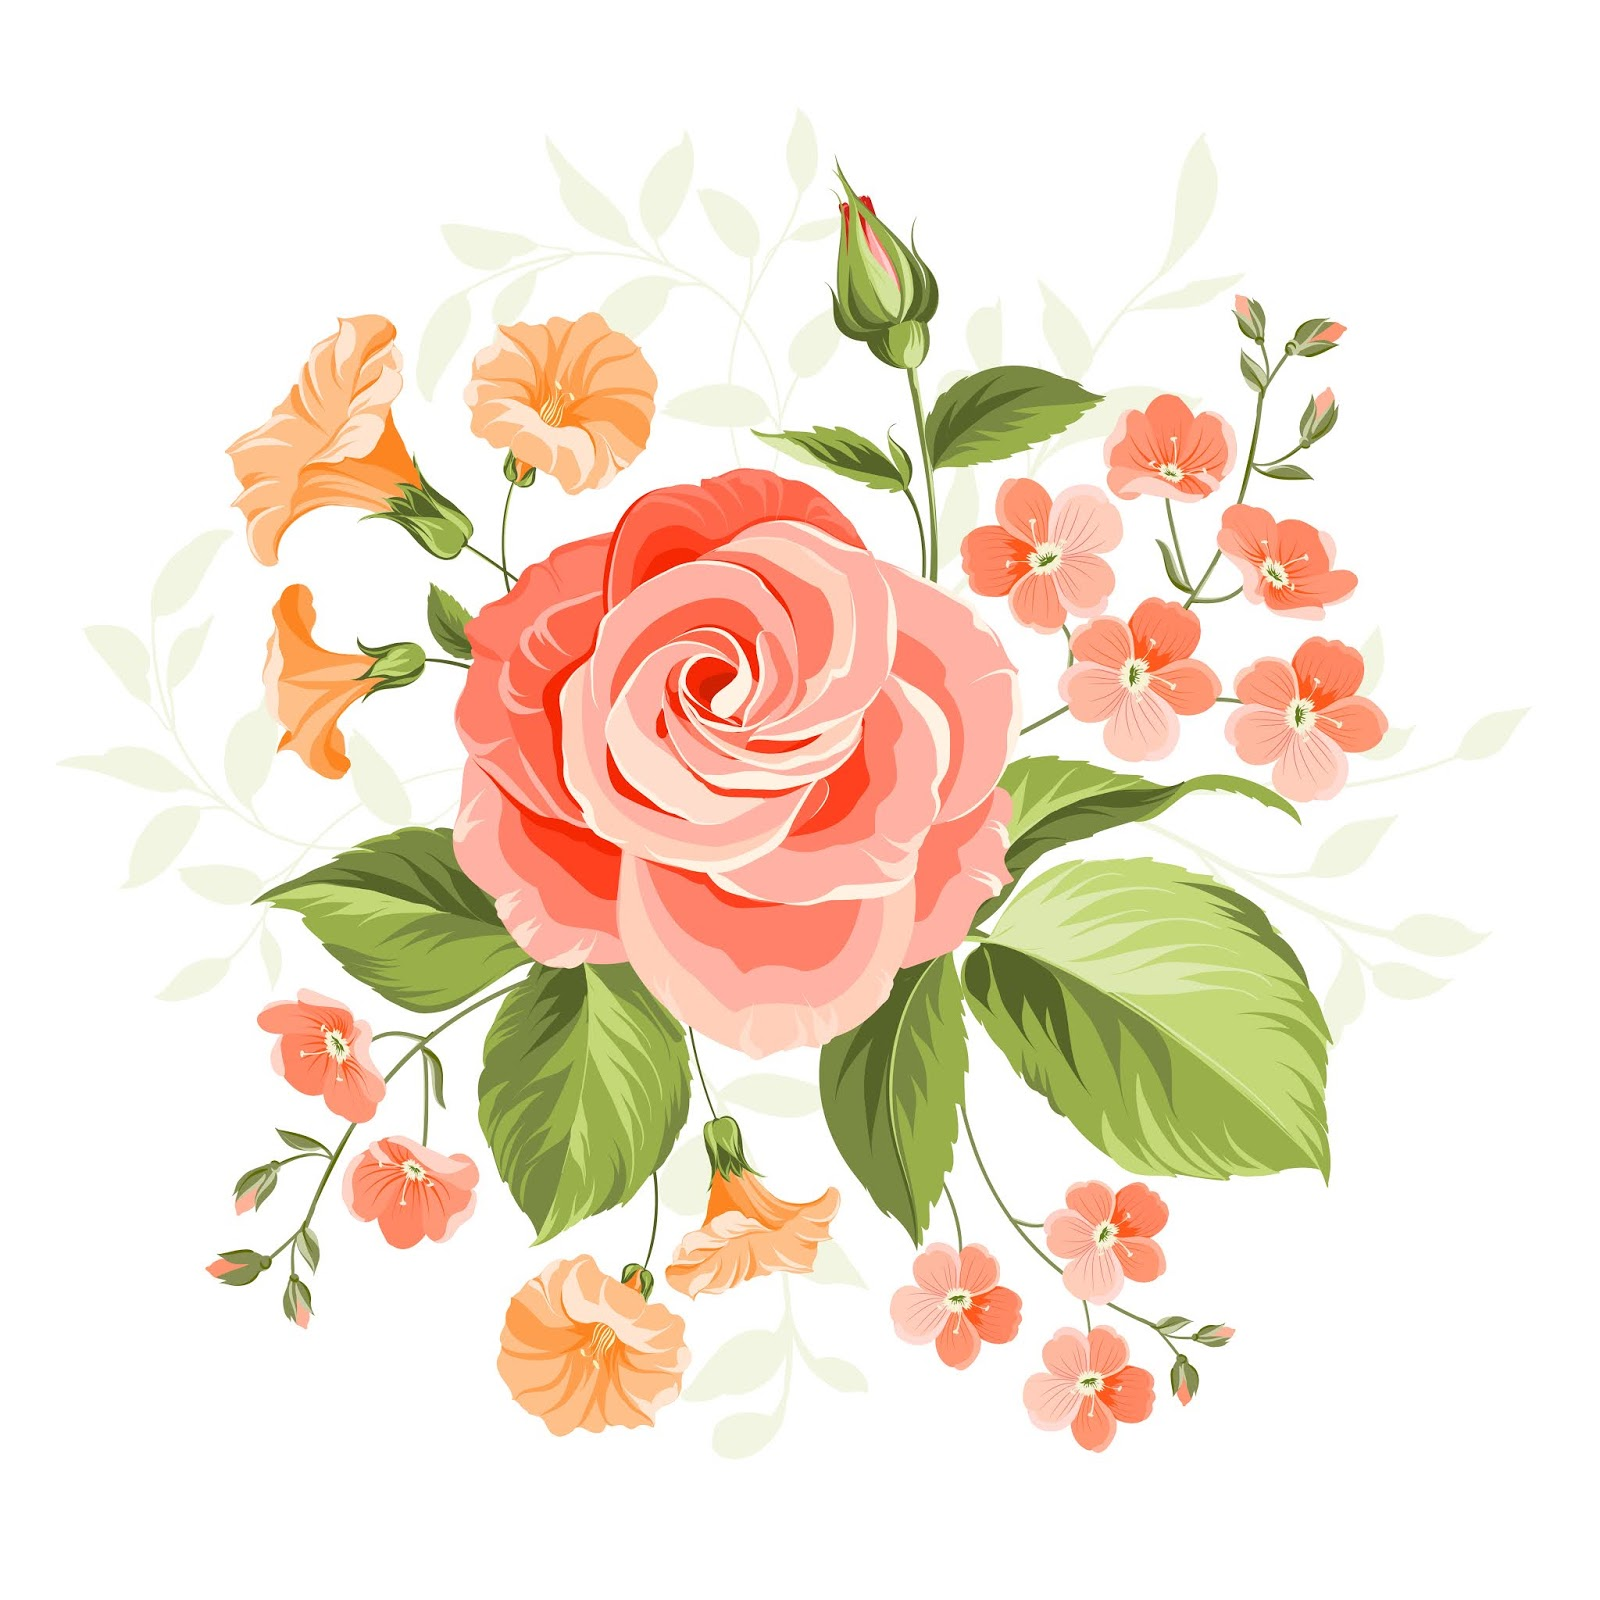 Pink Beautiful Rose Illustration Free Download Vector CDR, AI, EPS and PNG Formats